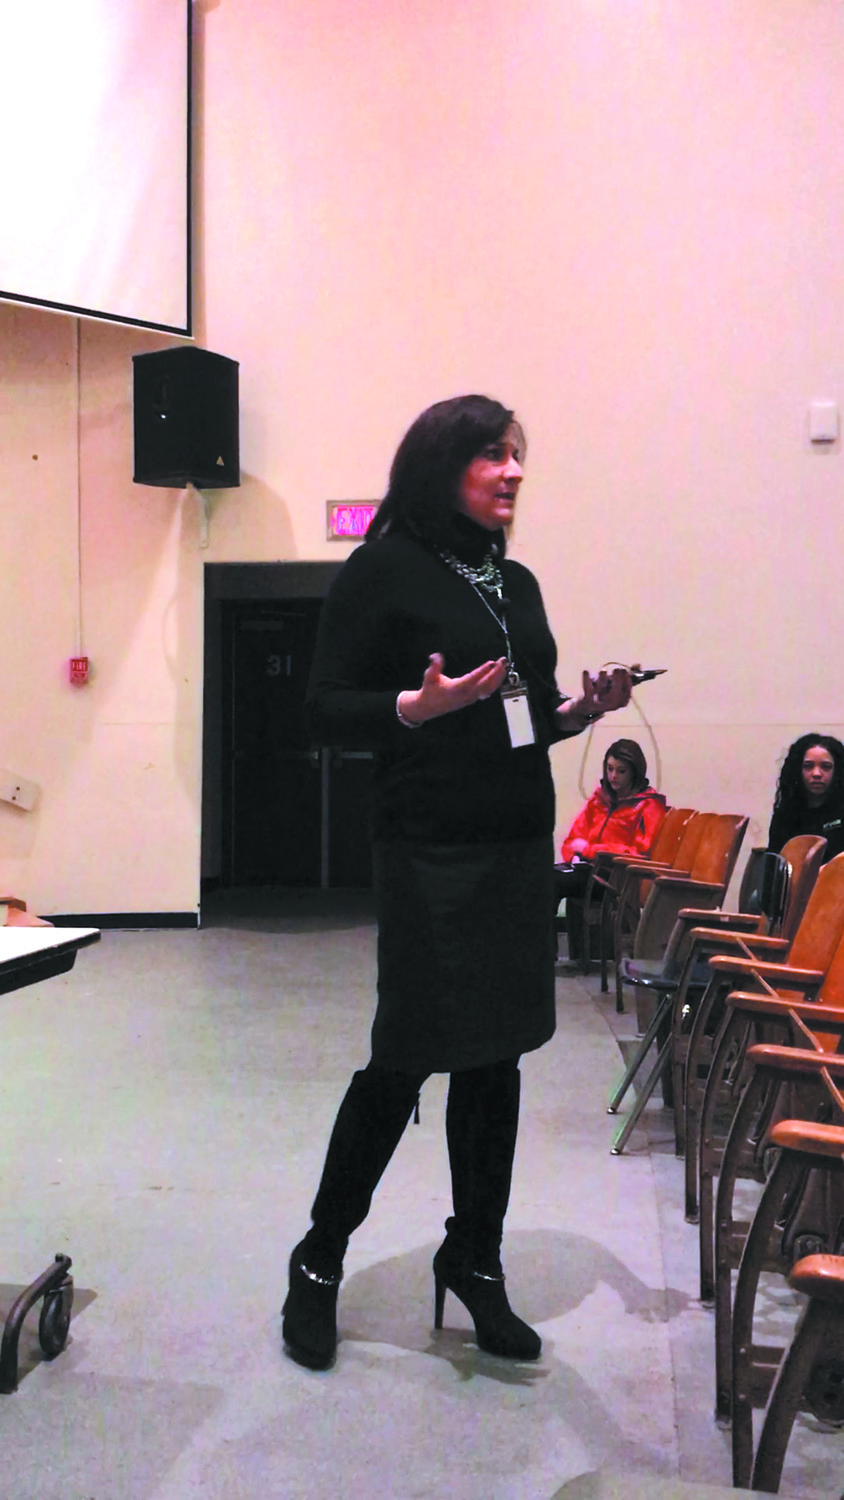 GETTING THE INFORMATION OUT THERE: Cranston Public School's Superintendent Jeannine Nota-Masse addresses the parents, staff and children of Edgewood Highland about the temporary transfer to Norwood Avenue school on January 10.